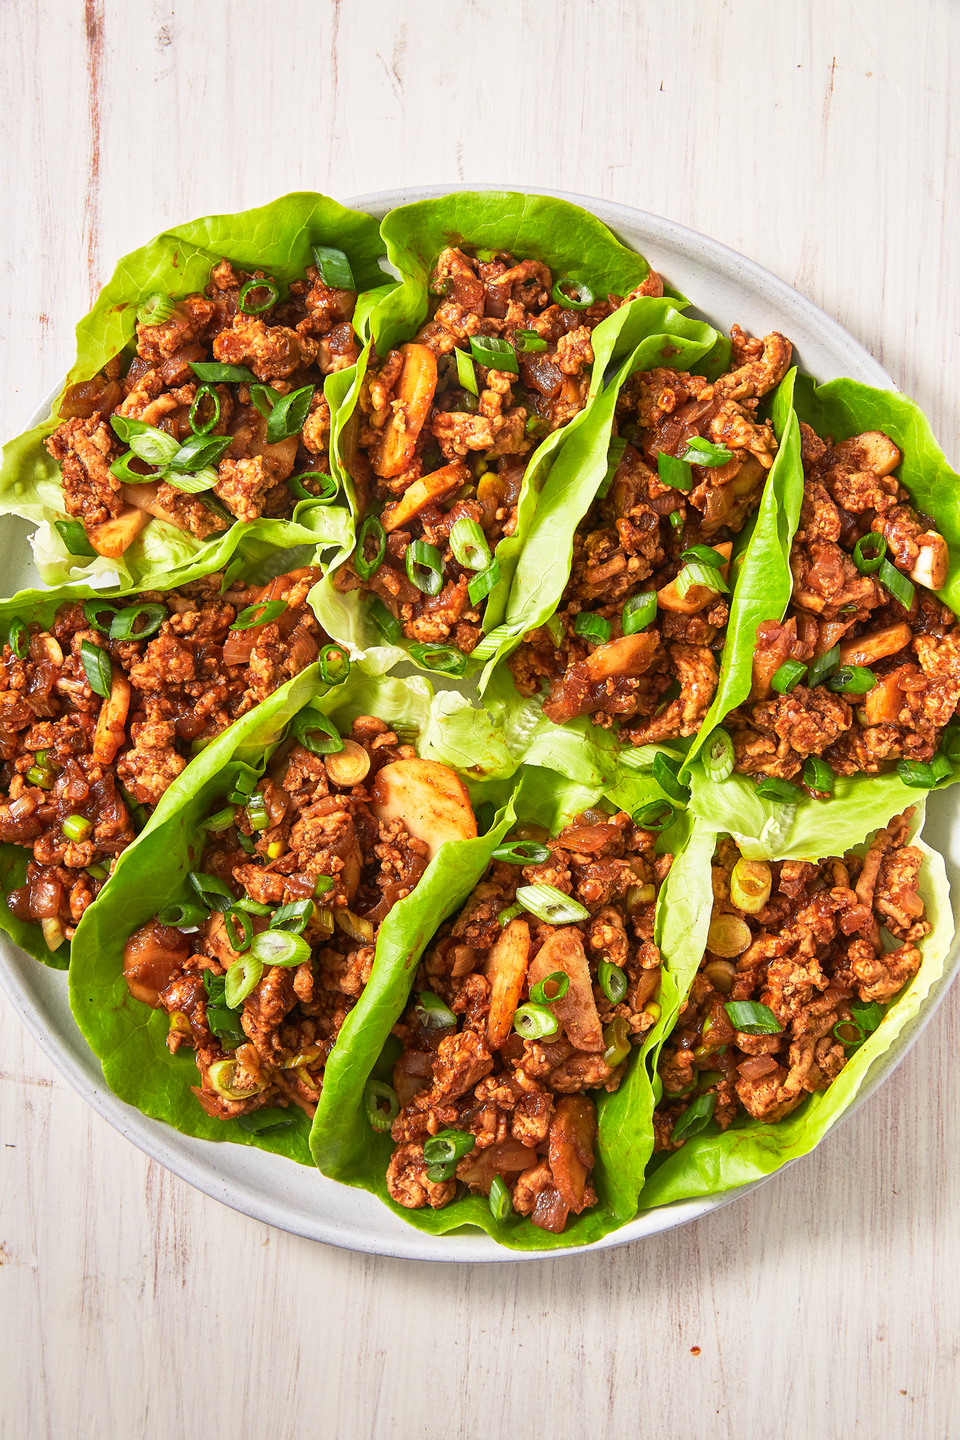 """<p>Watch your back, P.F. Chang's!</p><p>Get the recipe from <a href=""""https://www.delish.com/cooking/recipe-ideas/recipes/a49533/asian-lettuce-wraps-recipe/"""" rel=""""nofollow noopener"""" target=""""_blank"""" data-ylk=""""slk:Delish"""" class=""""link rapid-noclick-resp"""">Delish</a>. </p>"""